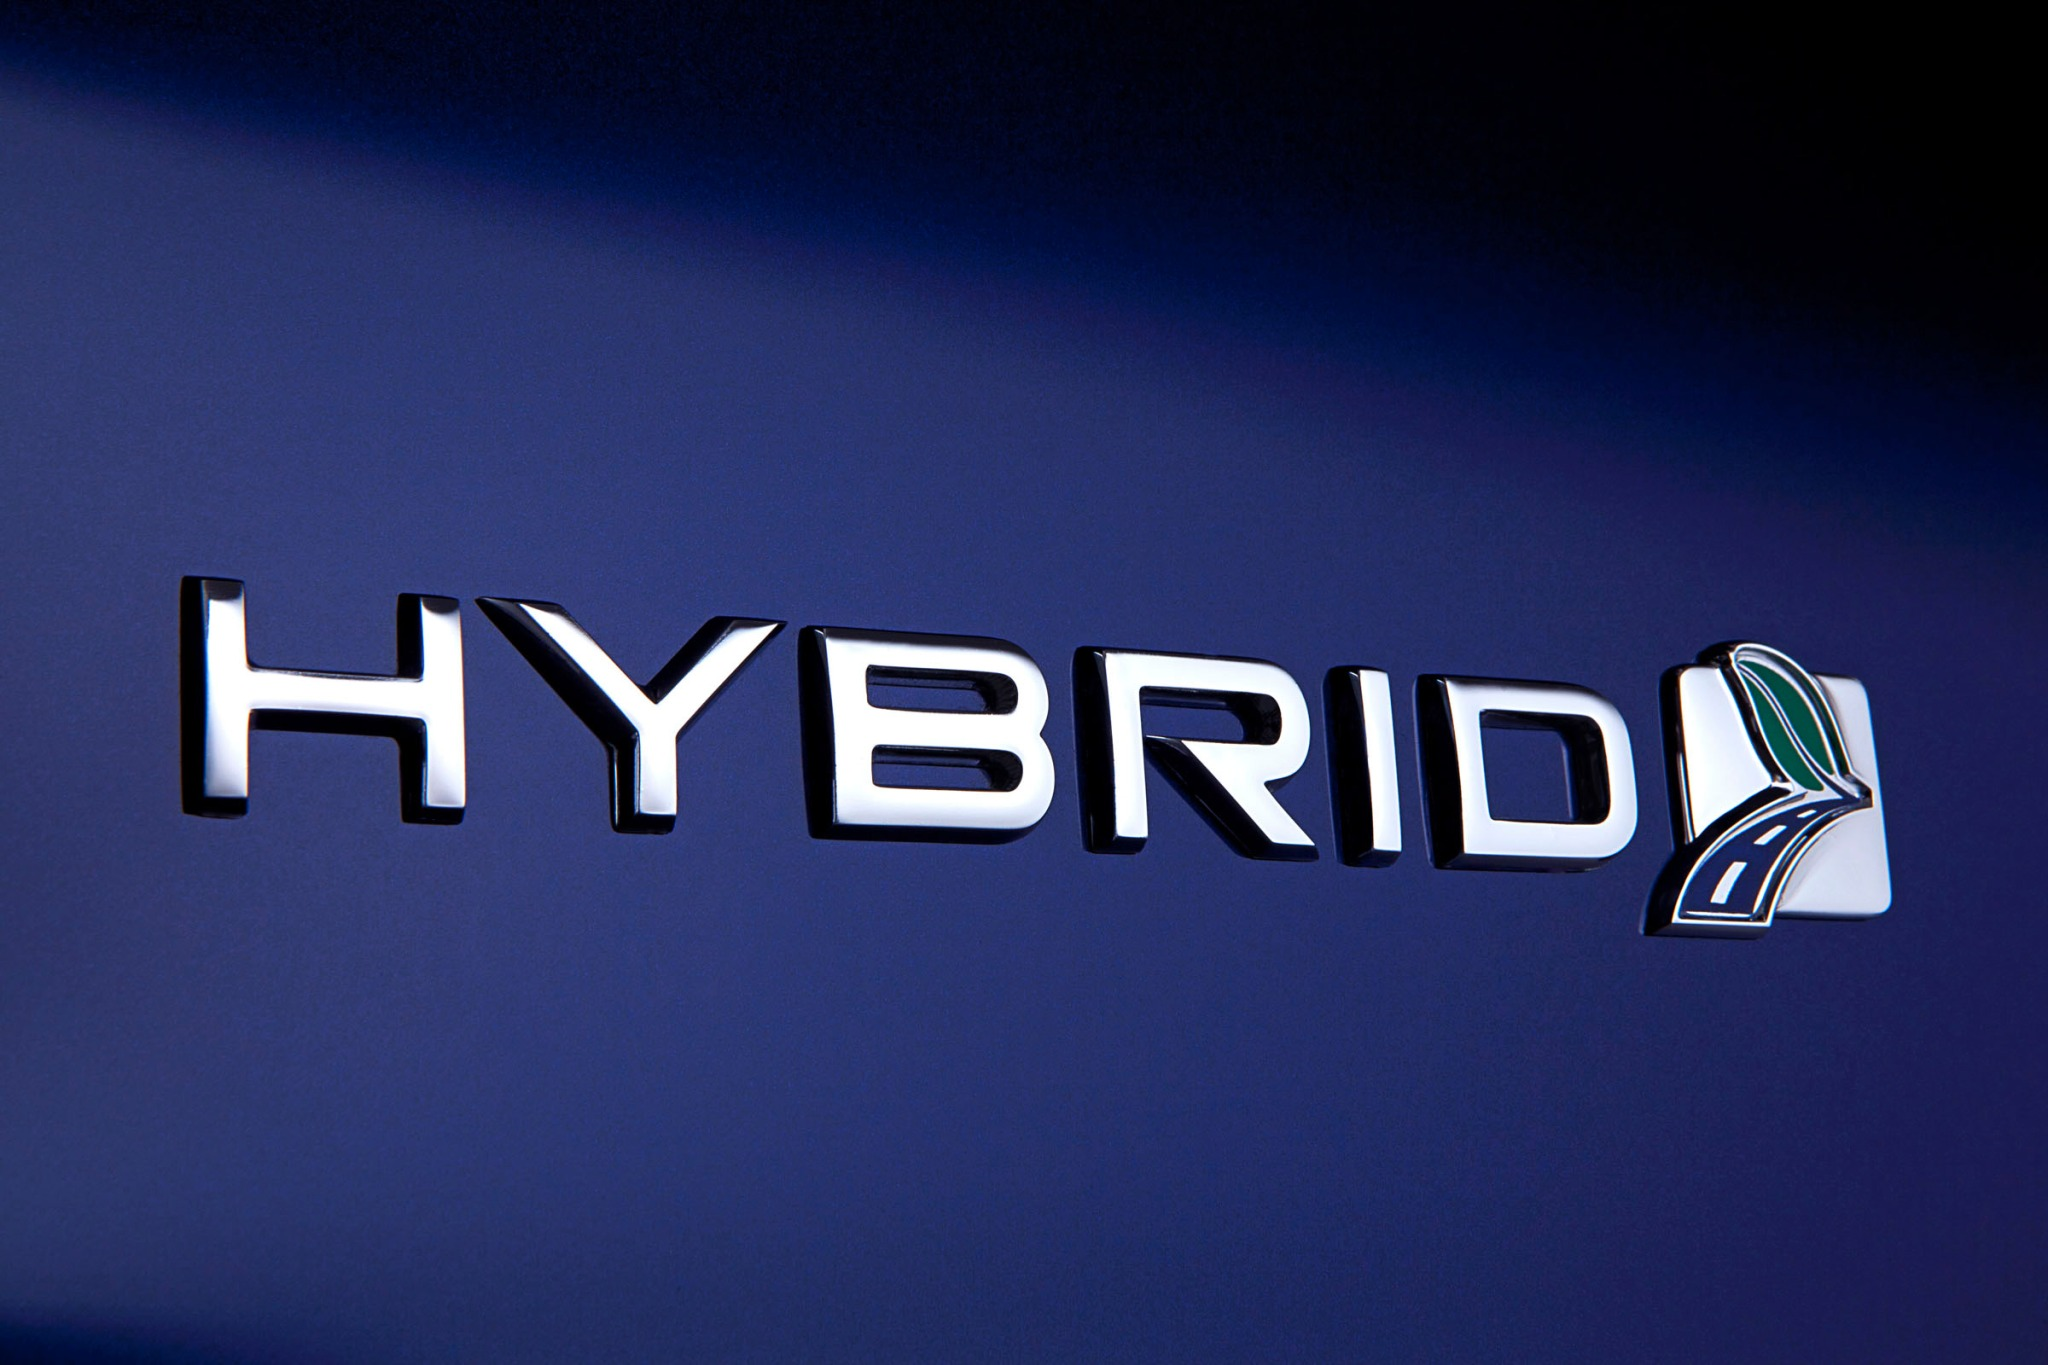 2013 Ford Fusion Hybrid S interior #5